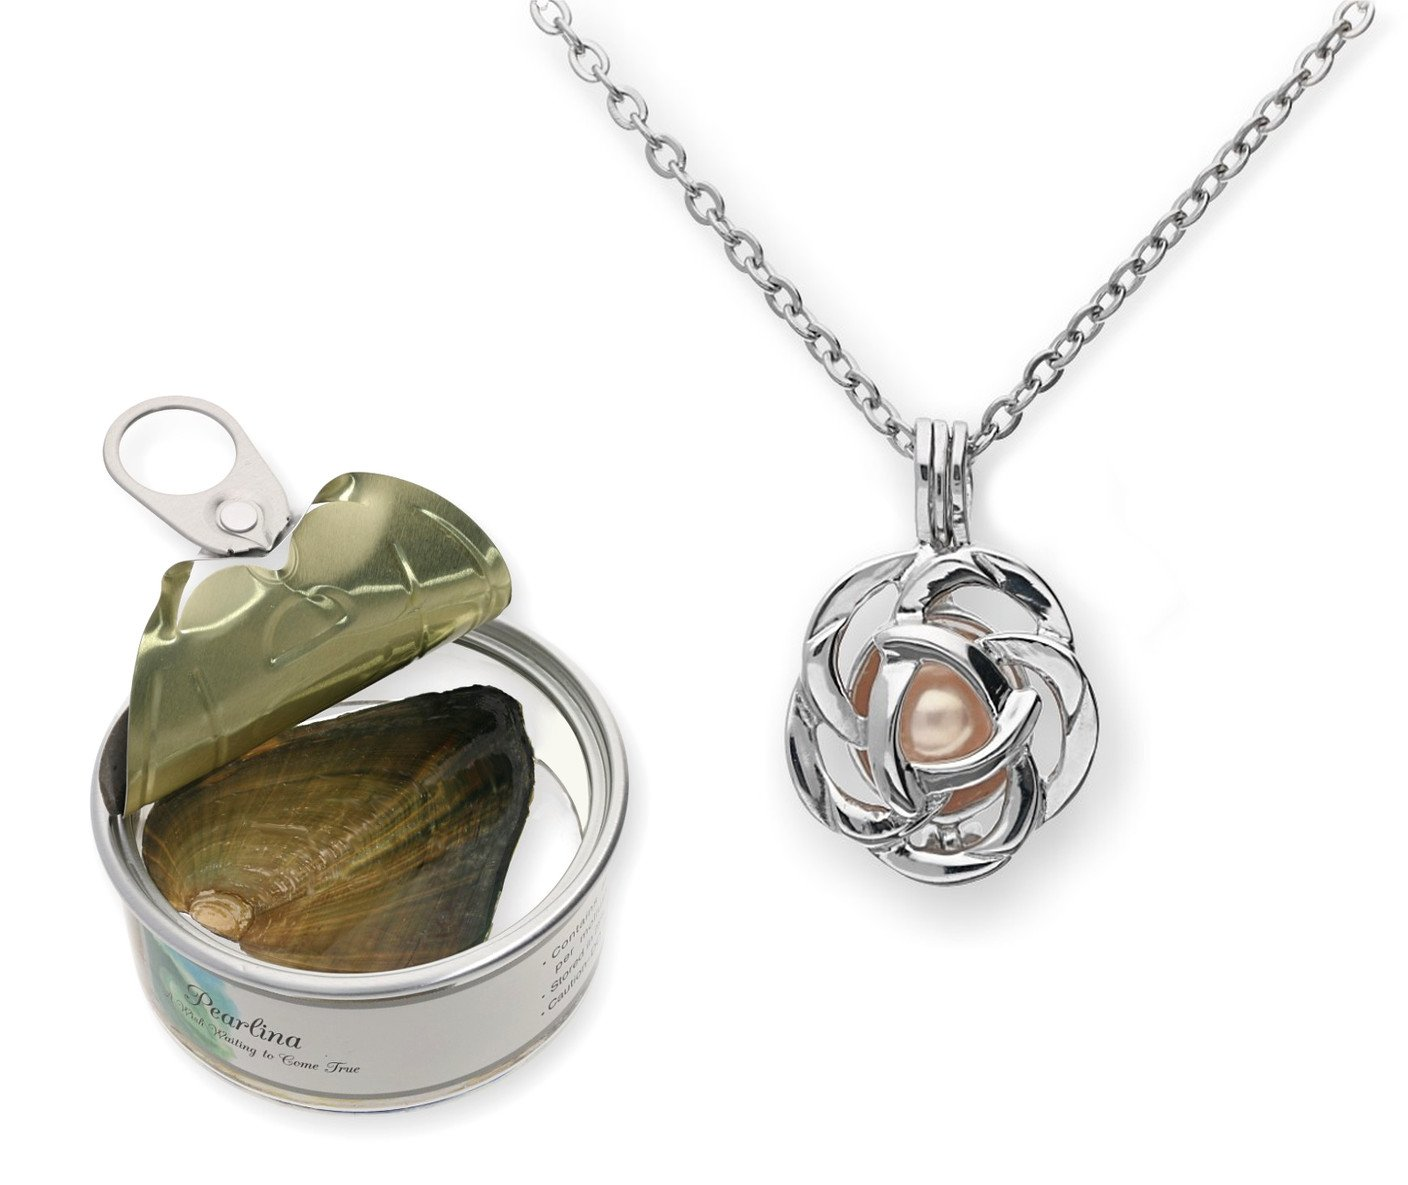 Pearlina Rose Flower Cultured Pearl Oyster Necklace Set Silver Plated Pendant w/Stainless Steel Chain 18'' by Pearlina